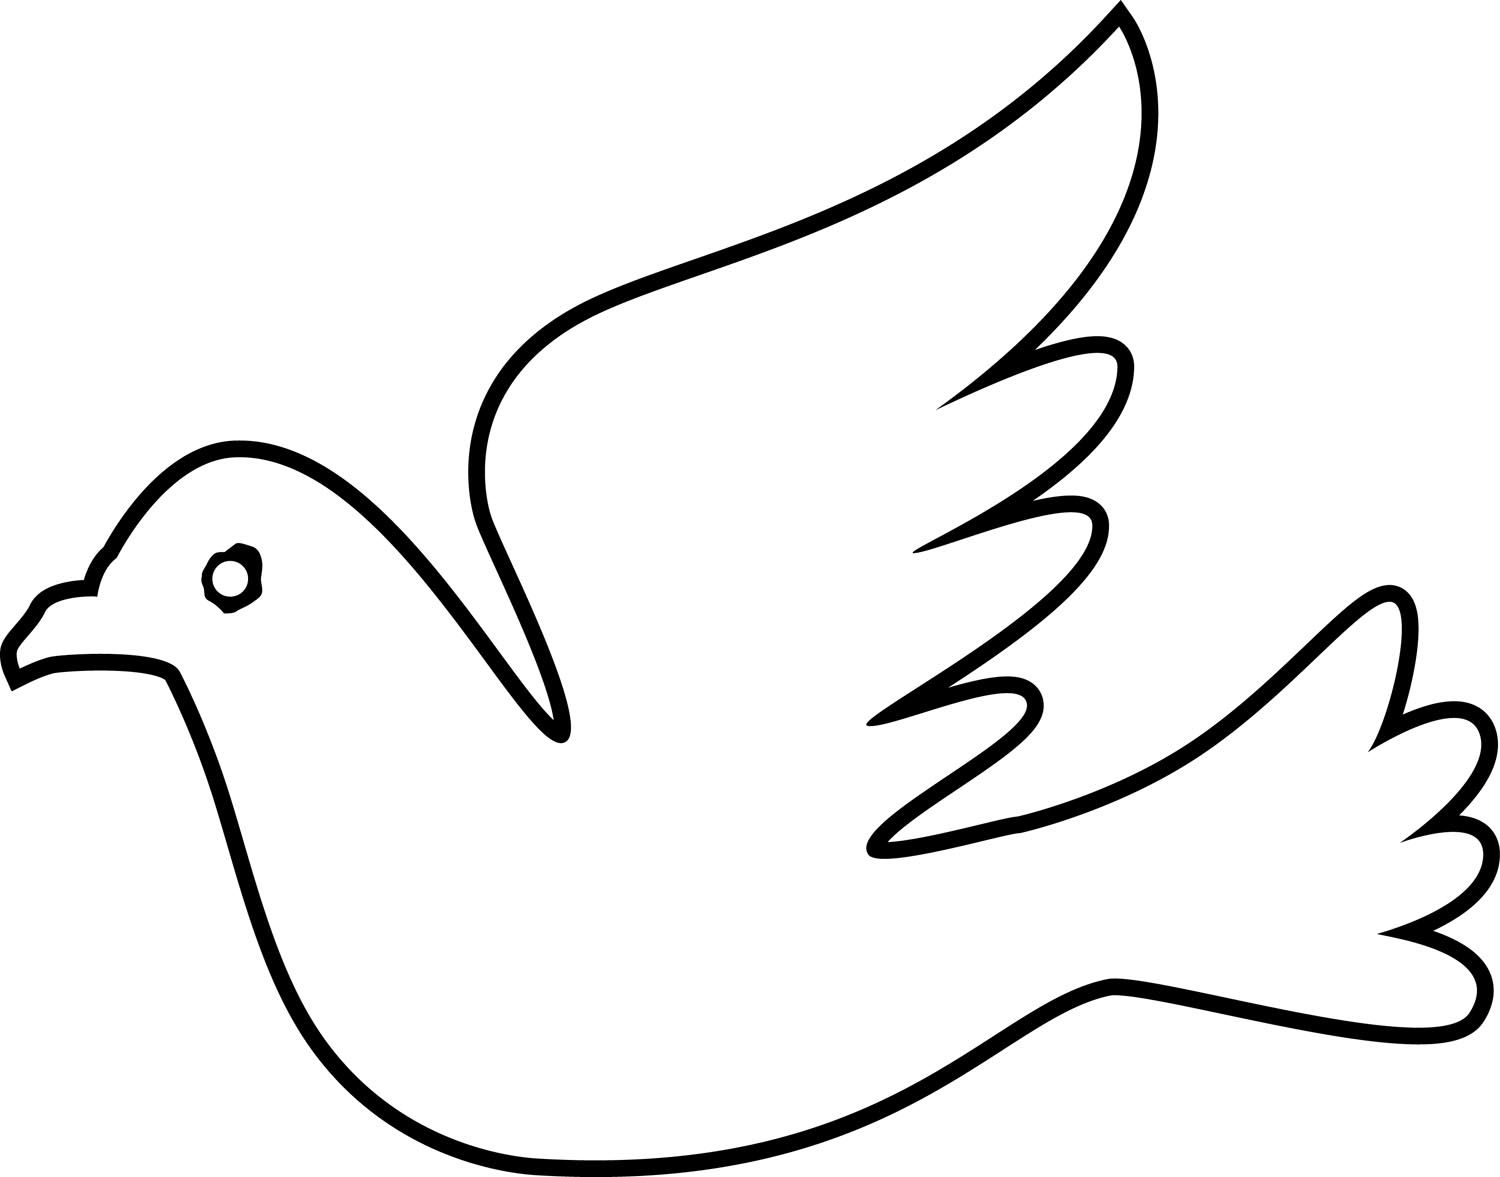 60221 Holy Spirit Dove Coloring Page Jpg 1 500 1 177 Pixels Coloring Pages Coloring Pages For Kids Bird Coloring Pages